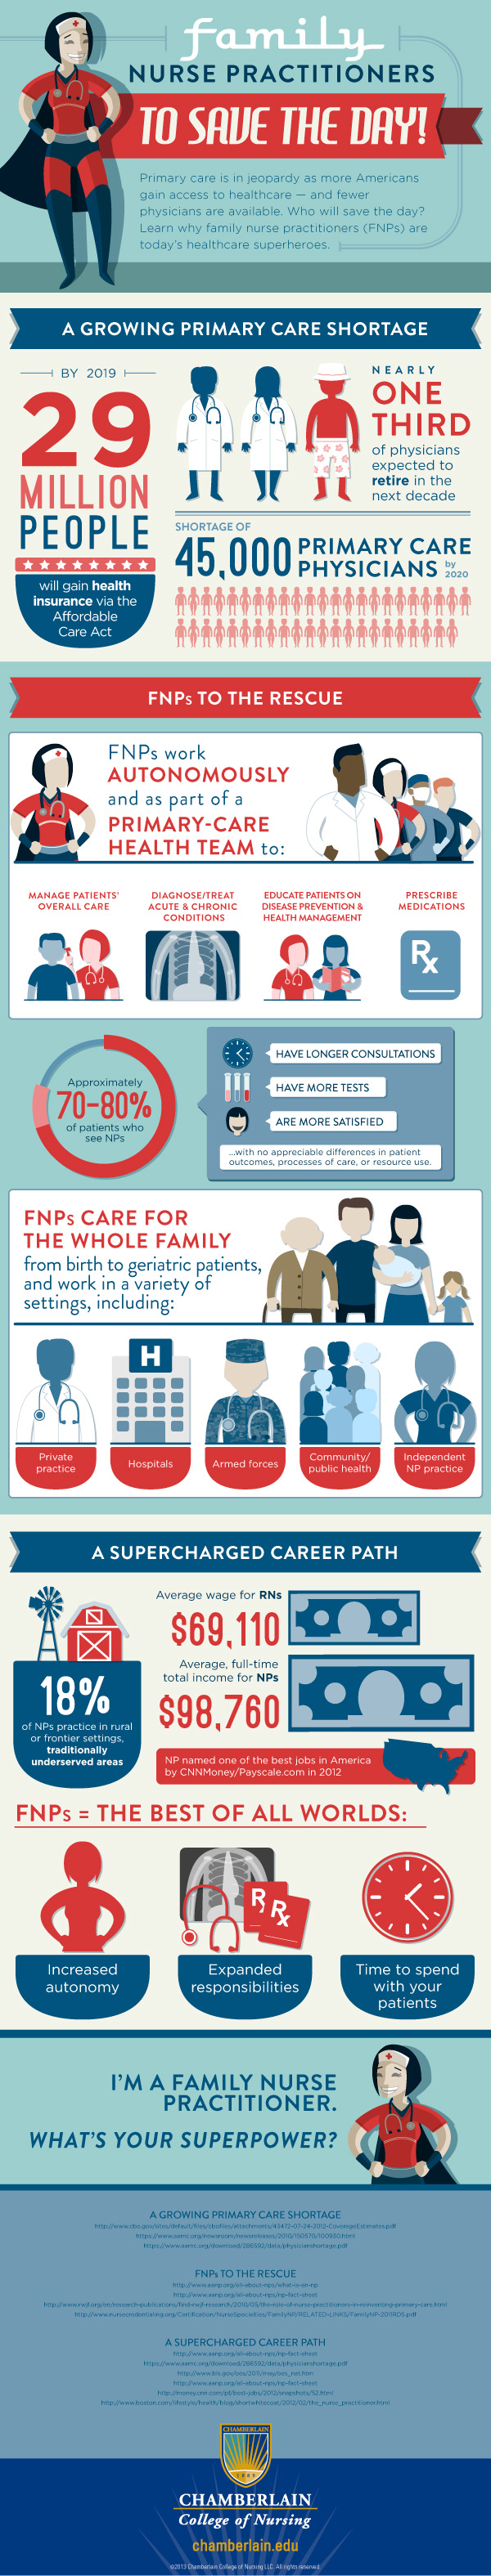 Family Nurse Practitioners To Save The Day